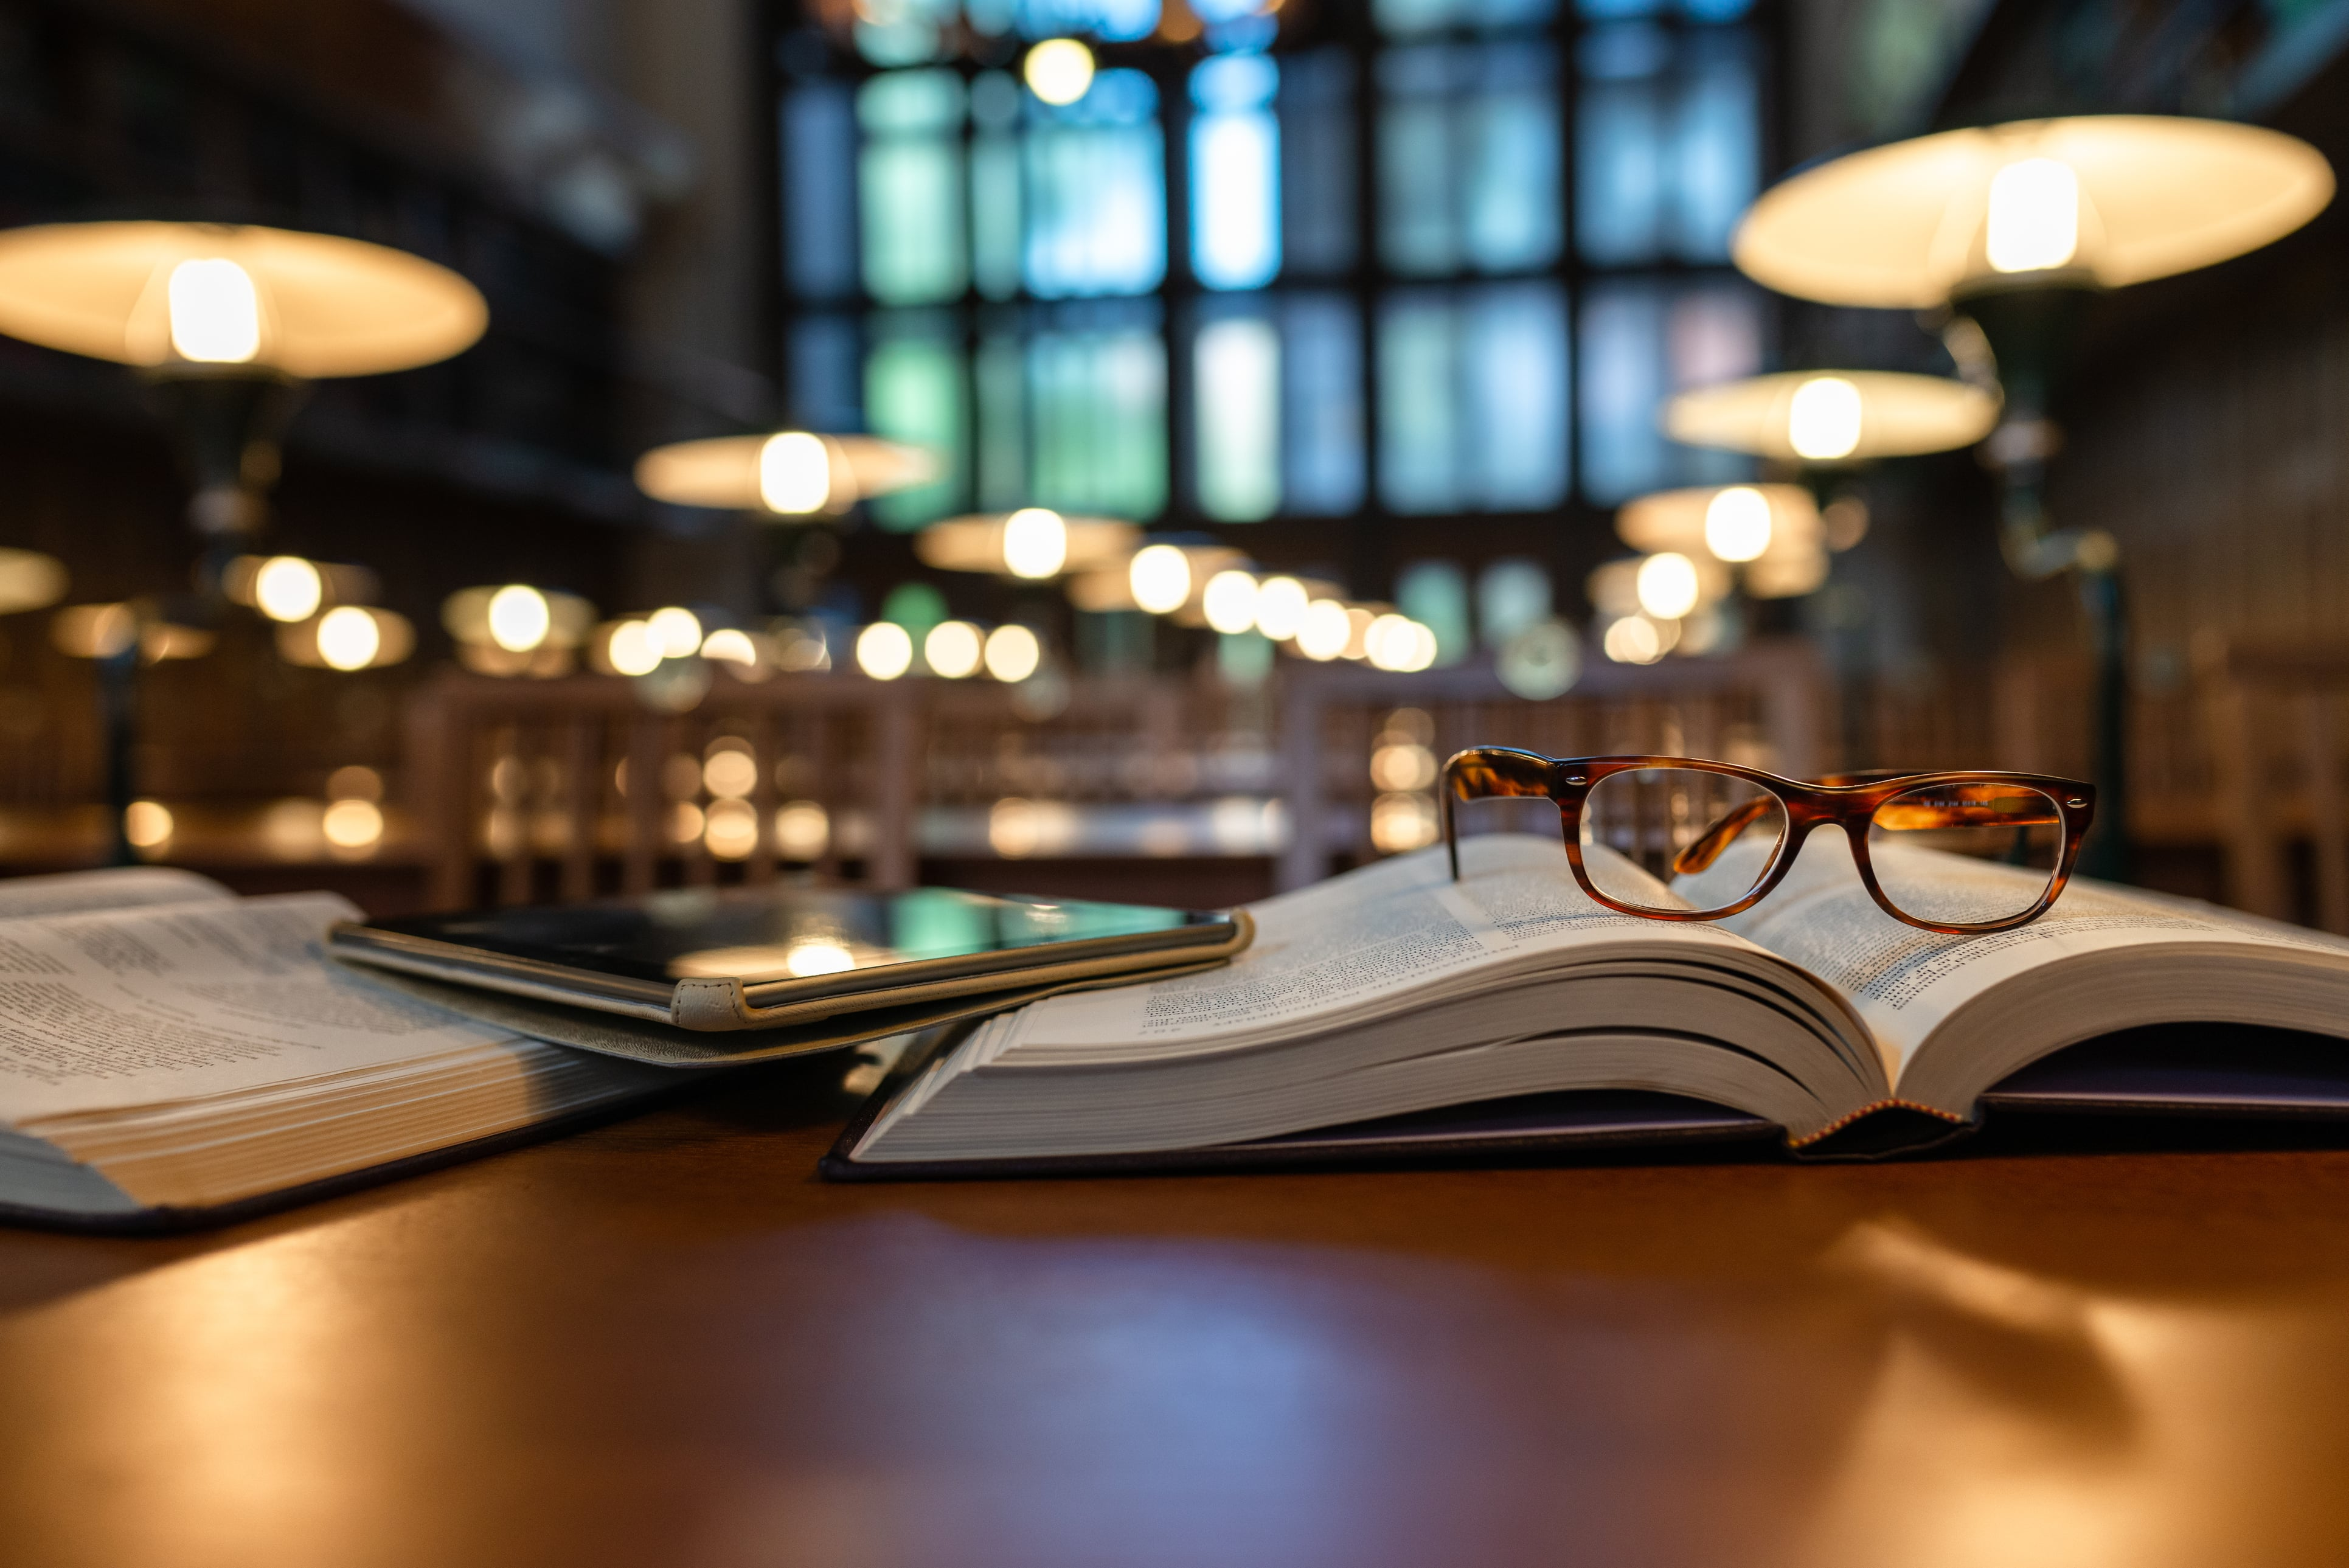 Pair of reading glasses left on an open book